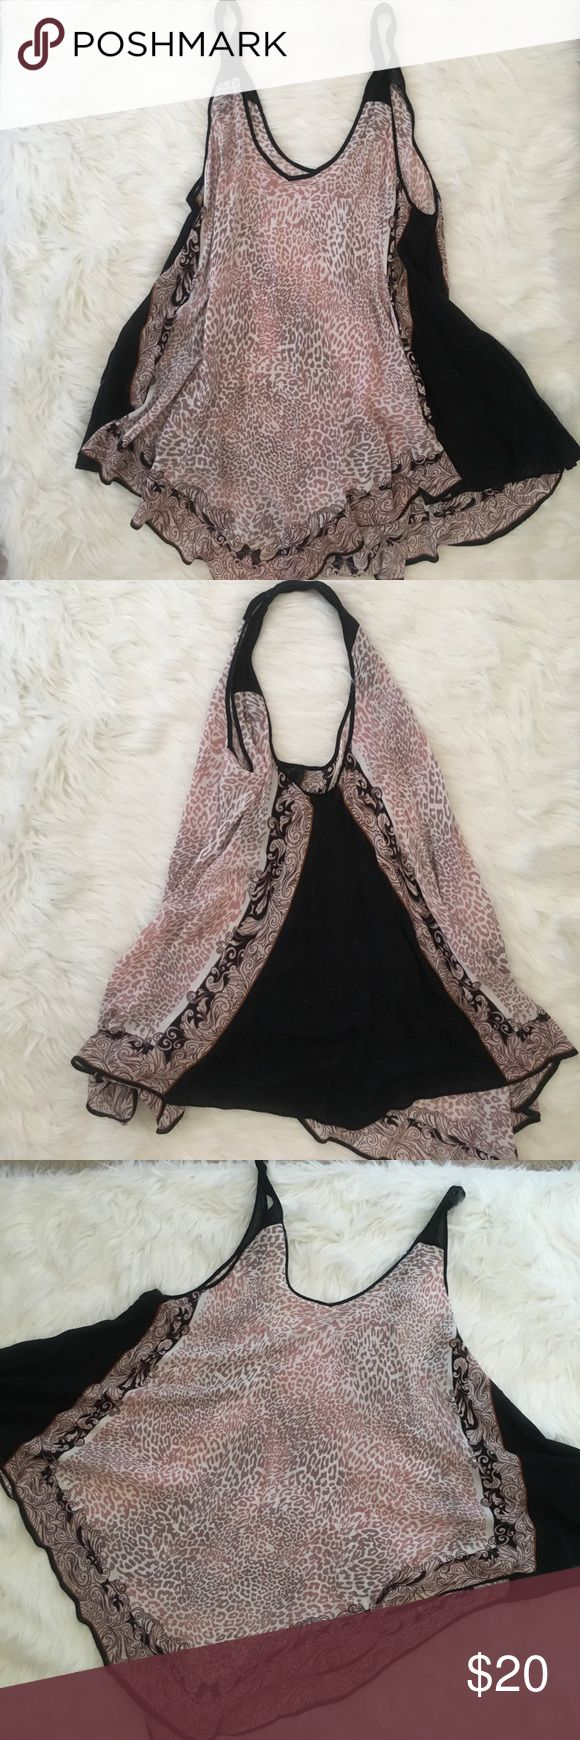 Free People Swinging Cheetah / Tribal Top / Dress Free People Swinging Cheetah / Tribal Top w/ Black side panels Size US M/L - super comfy with pair of legging on hot day. This can also be a dress for ladies that are shorter :) Free People Tops Blouses